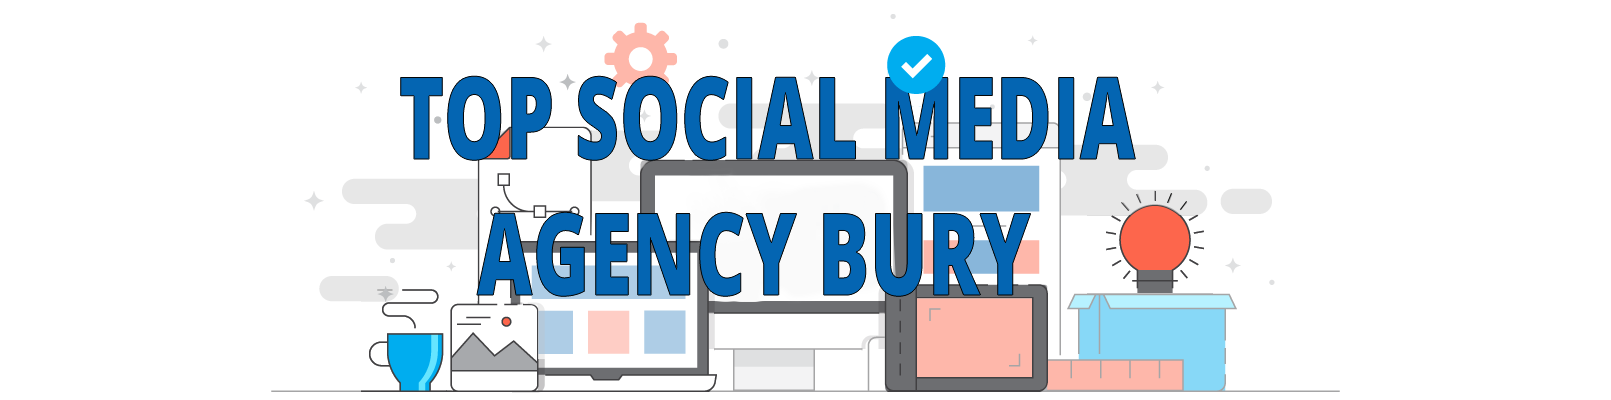 social media marketing agency in bury to boost your sale